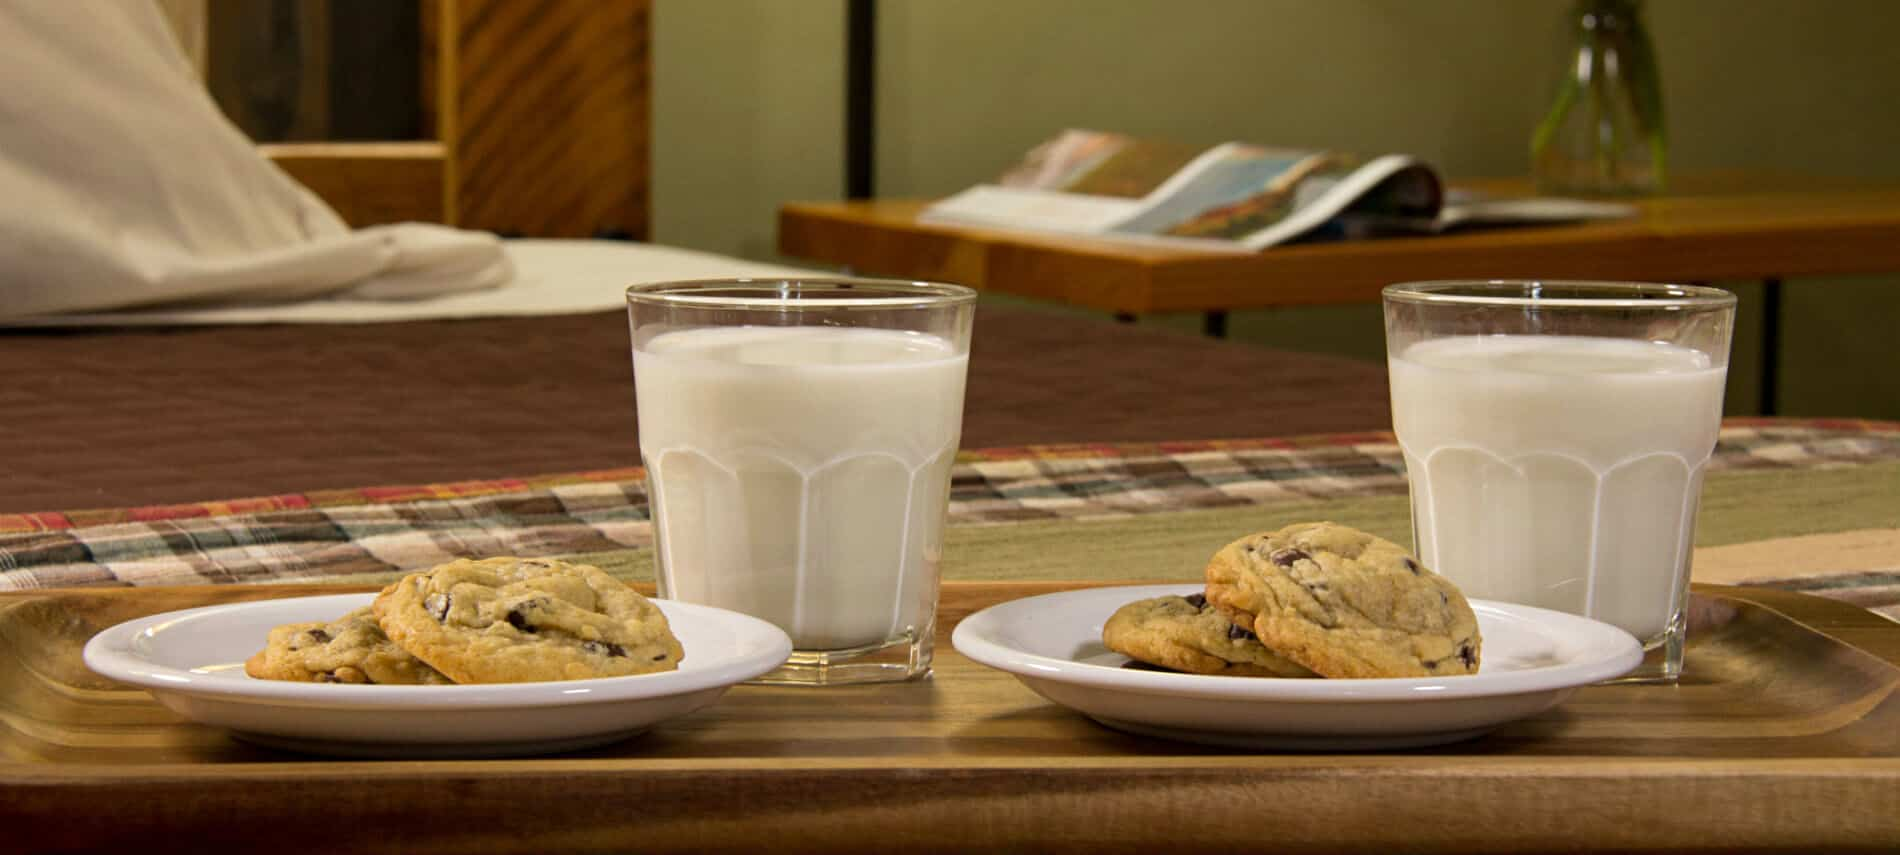 Wood tray topped with two white plates of chocolate chip cookies and two glasses of milk